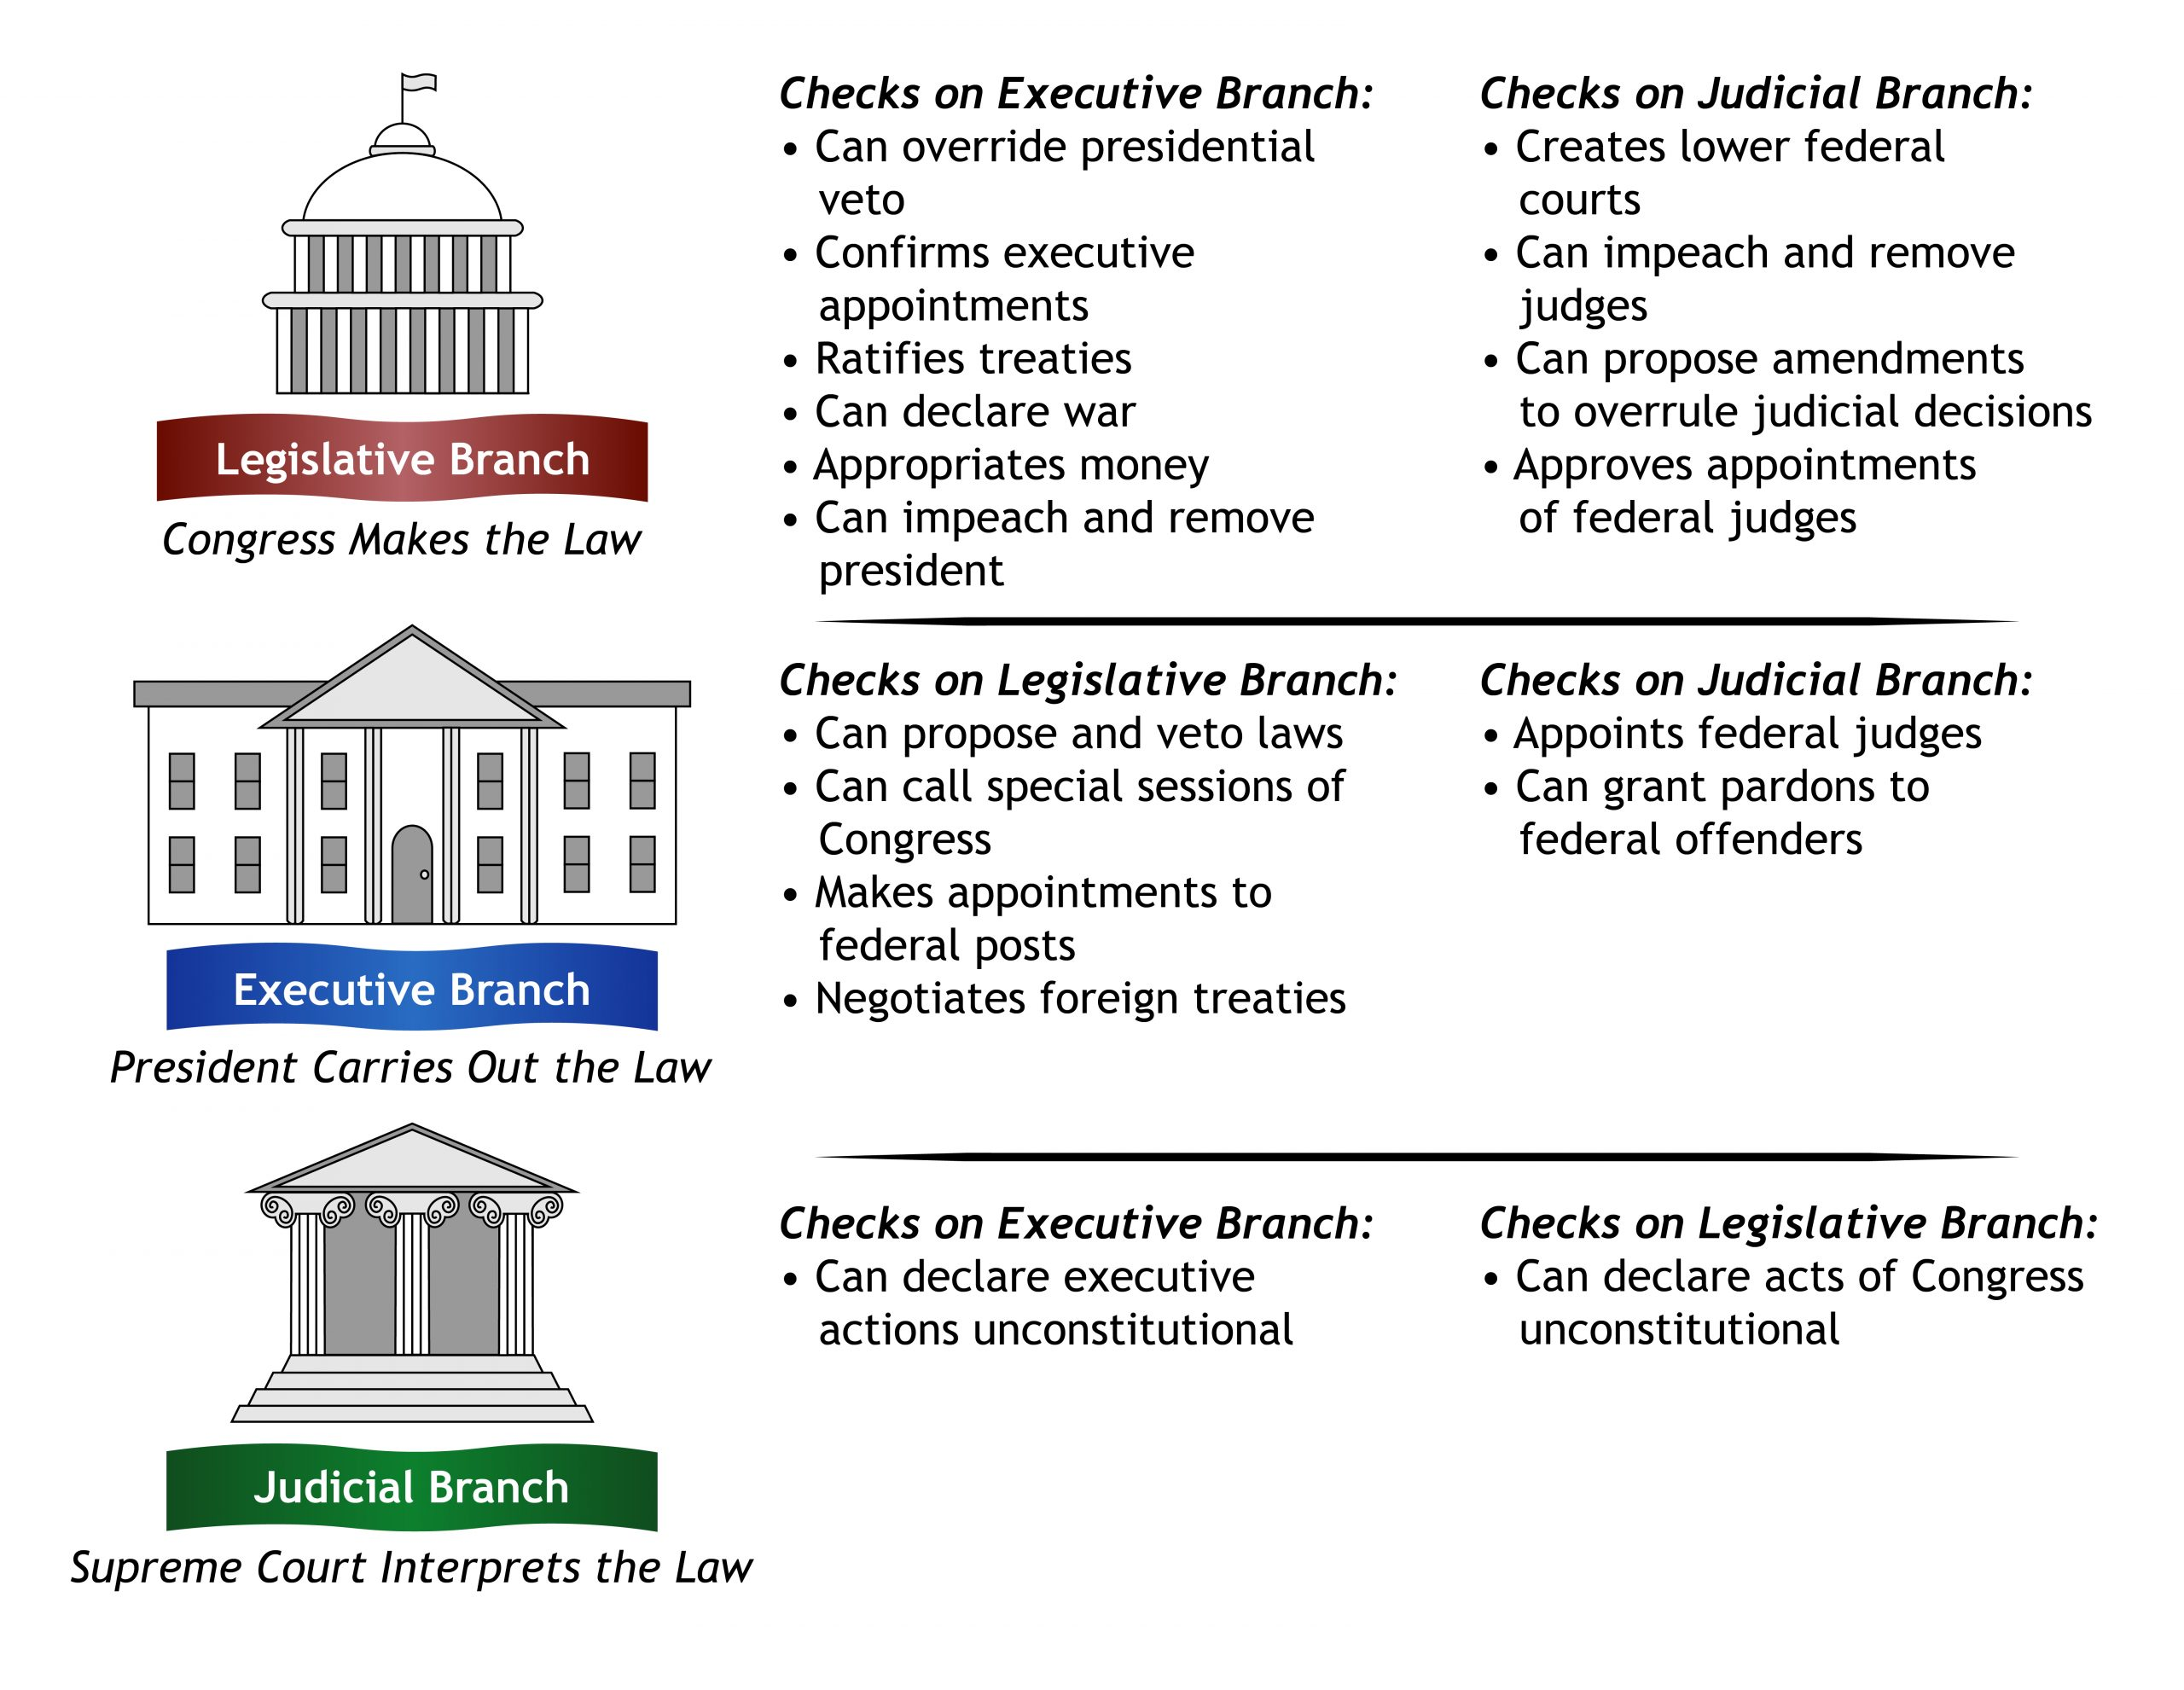 Chart showing the checks and balances of each branch of government over the other branches